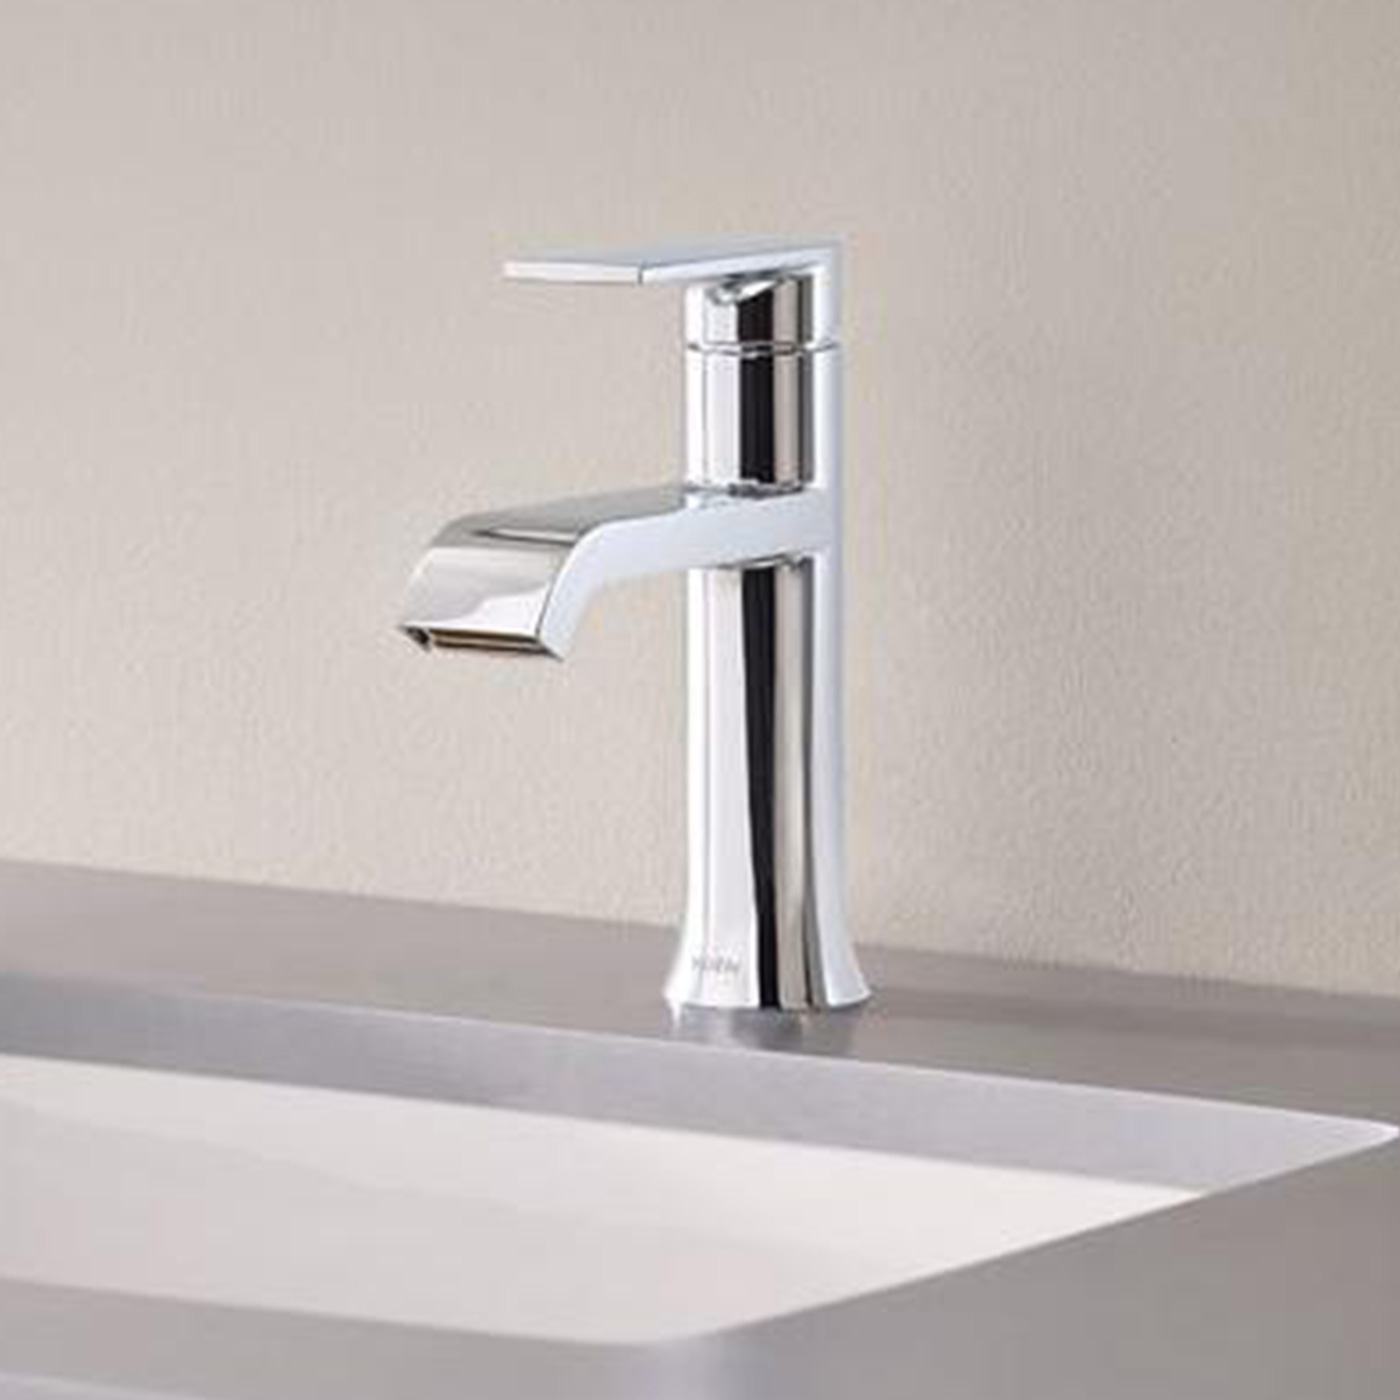 shower and sink faucet sets. Single Handle Sink Faucets Bathroom for Your  Shower Head and Bathtub The Home Depot